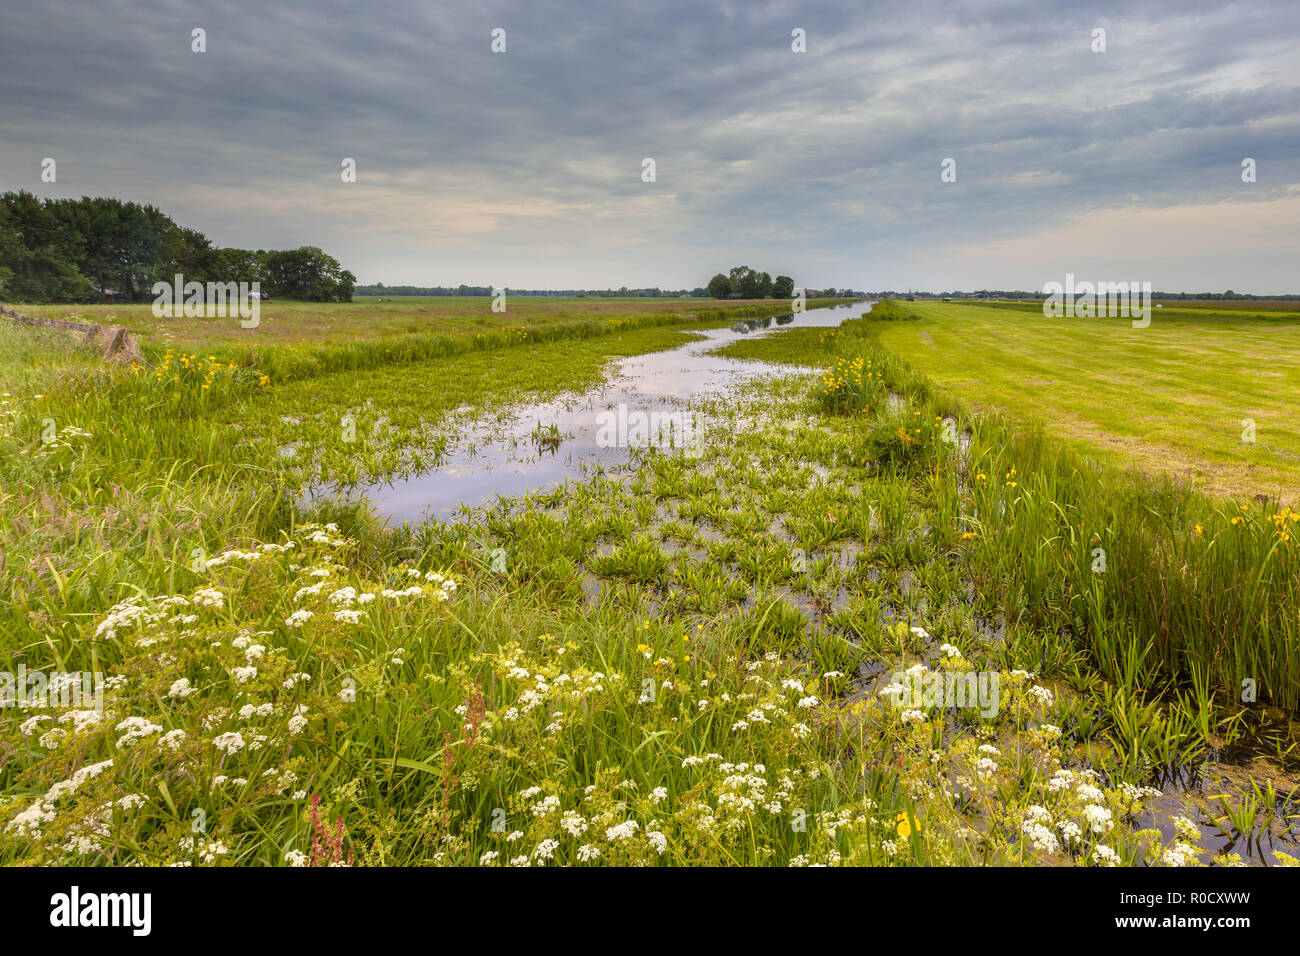 Dutch canal filled by Water Soldier (Stratiotes aloides) also known as Crab's claw. This is the natural habitat of protected rare dragonfly species li Stock Photo